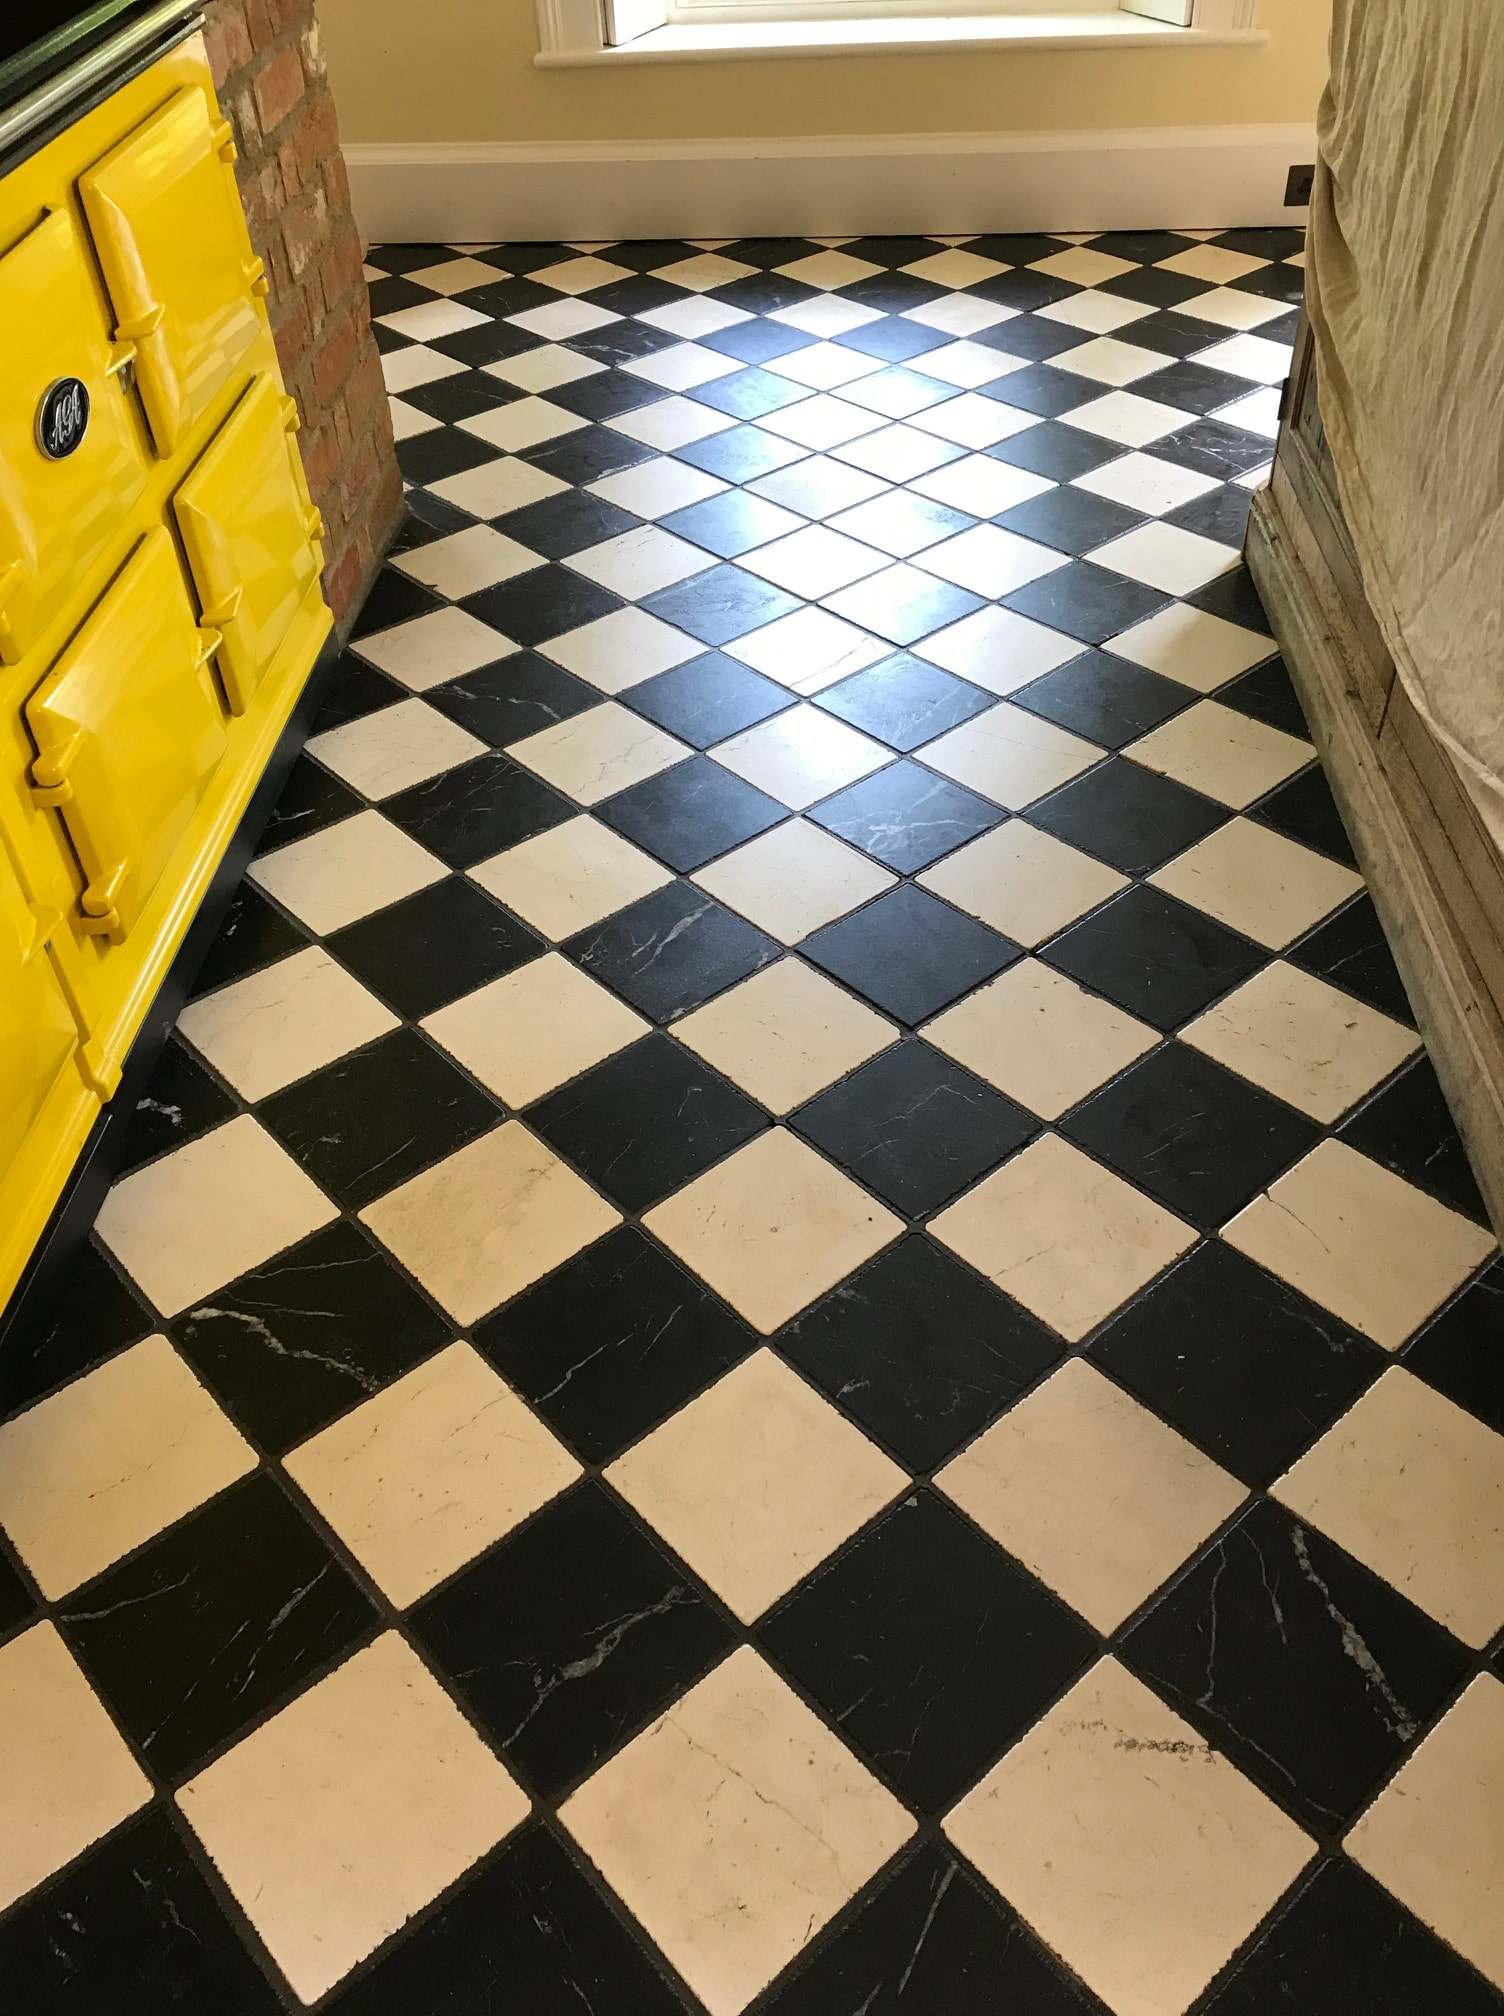 Classic Black and White Marble Kitchen Floor Before Renovation Bamber Bridge